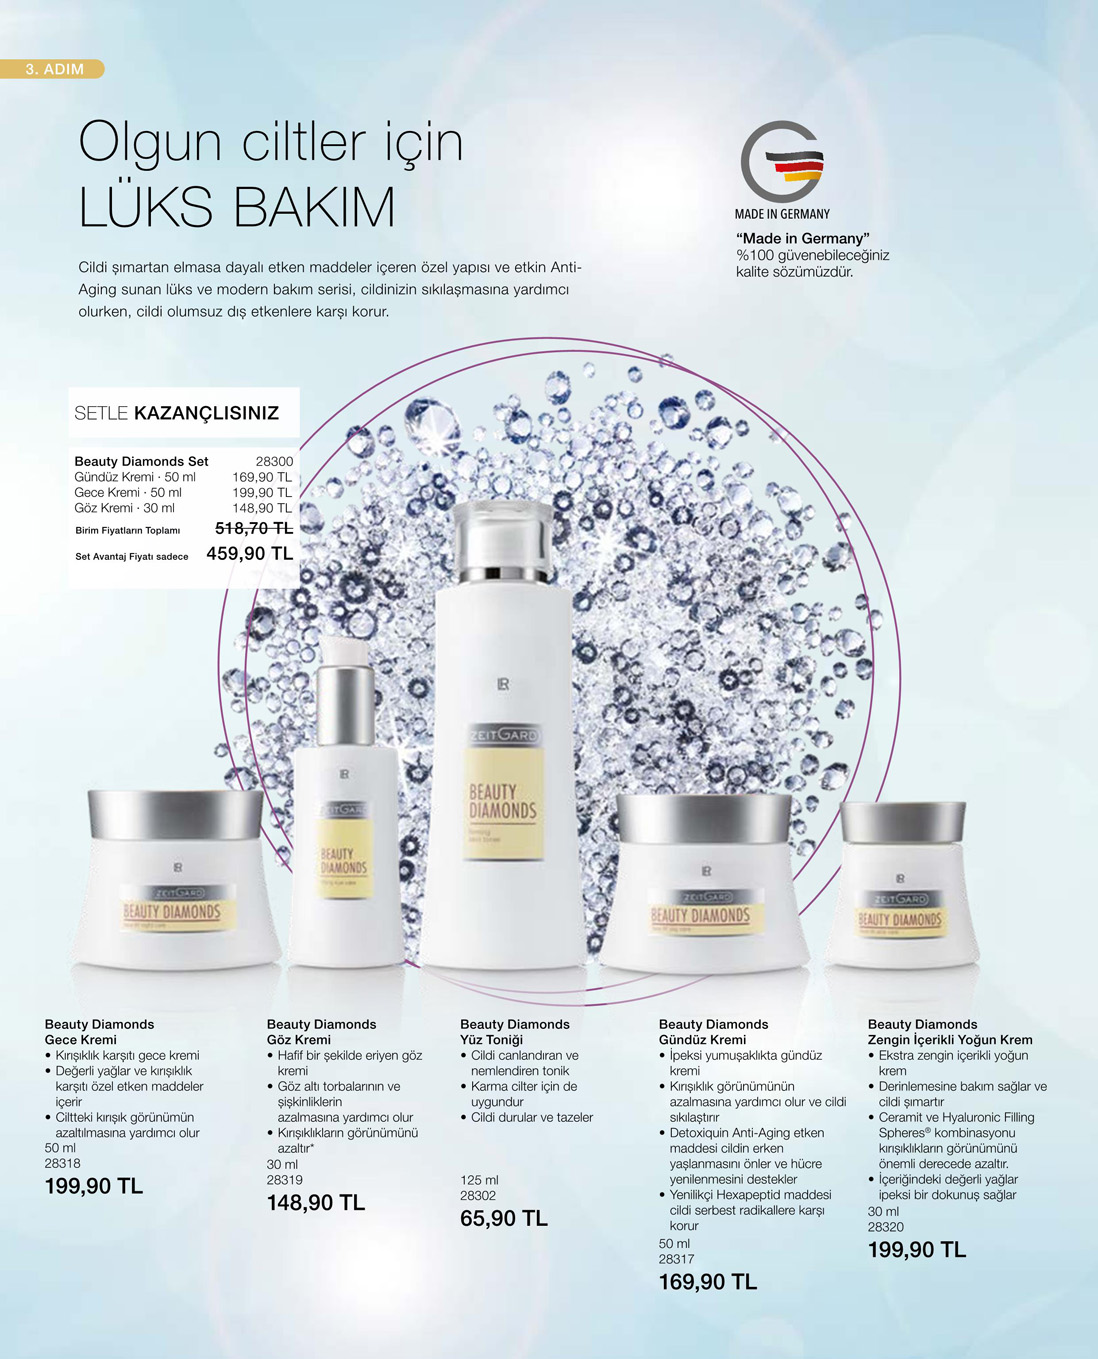 LR Beauty Diamonds Gece Kremi katalog